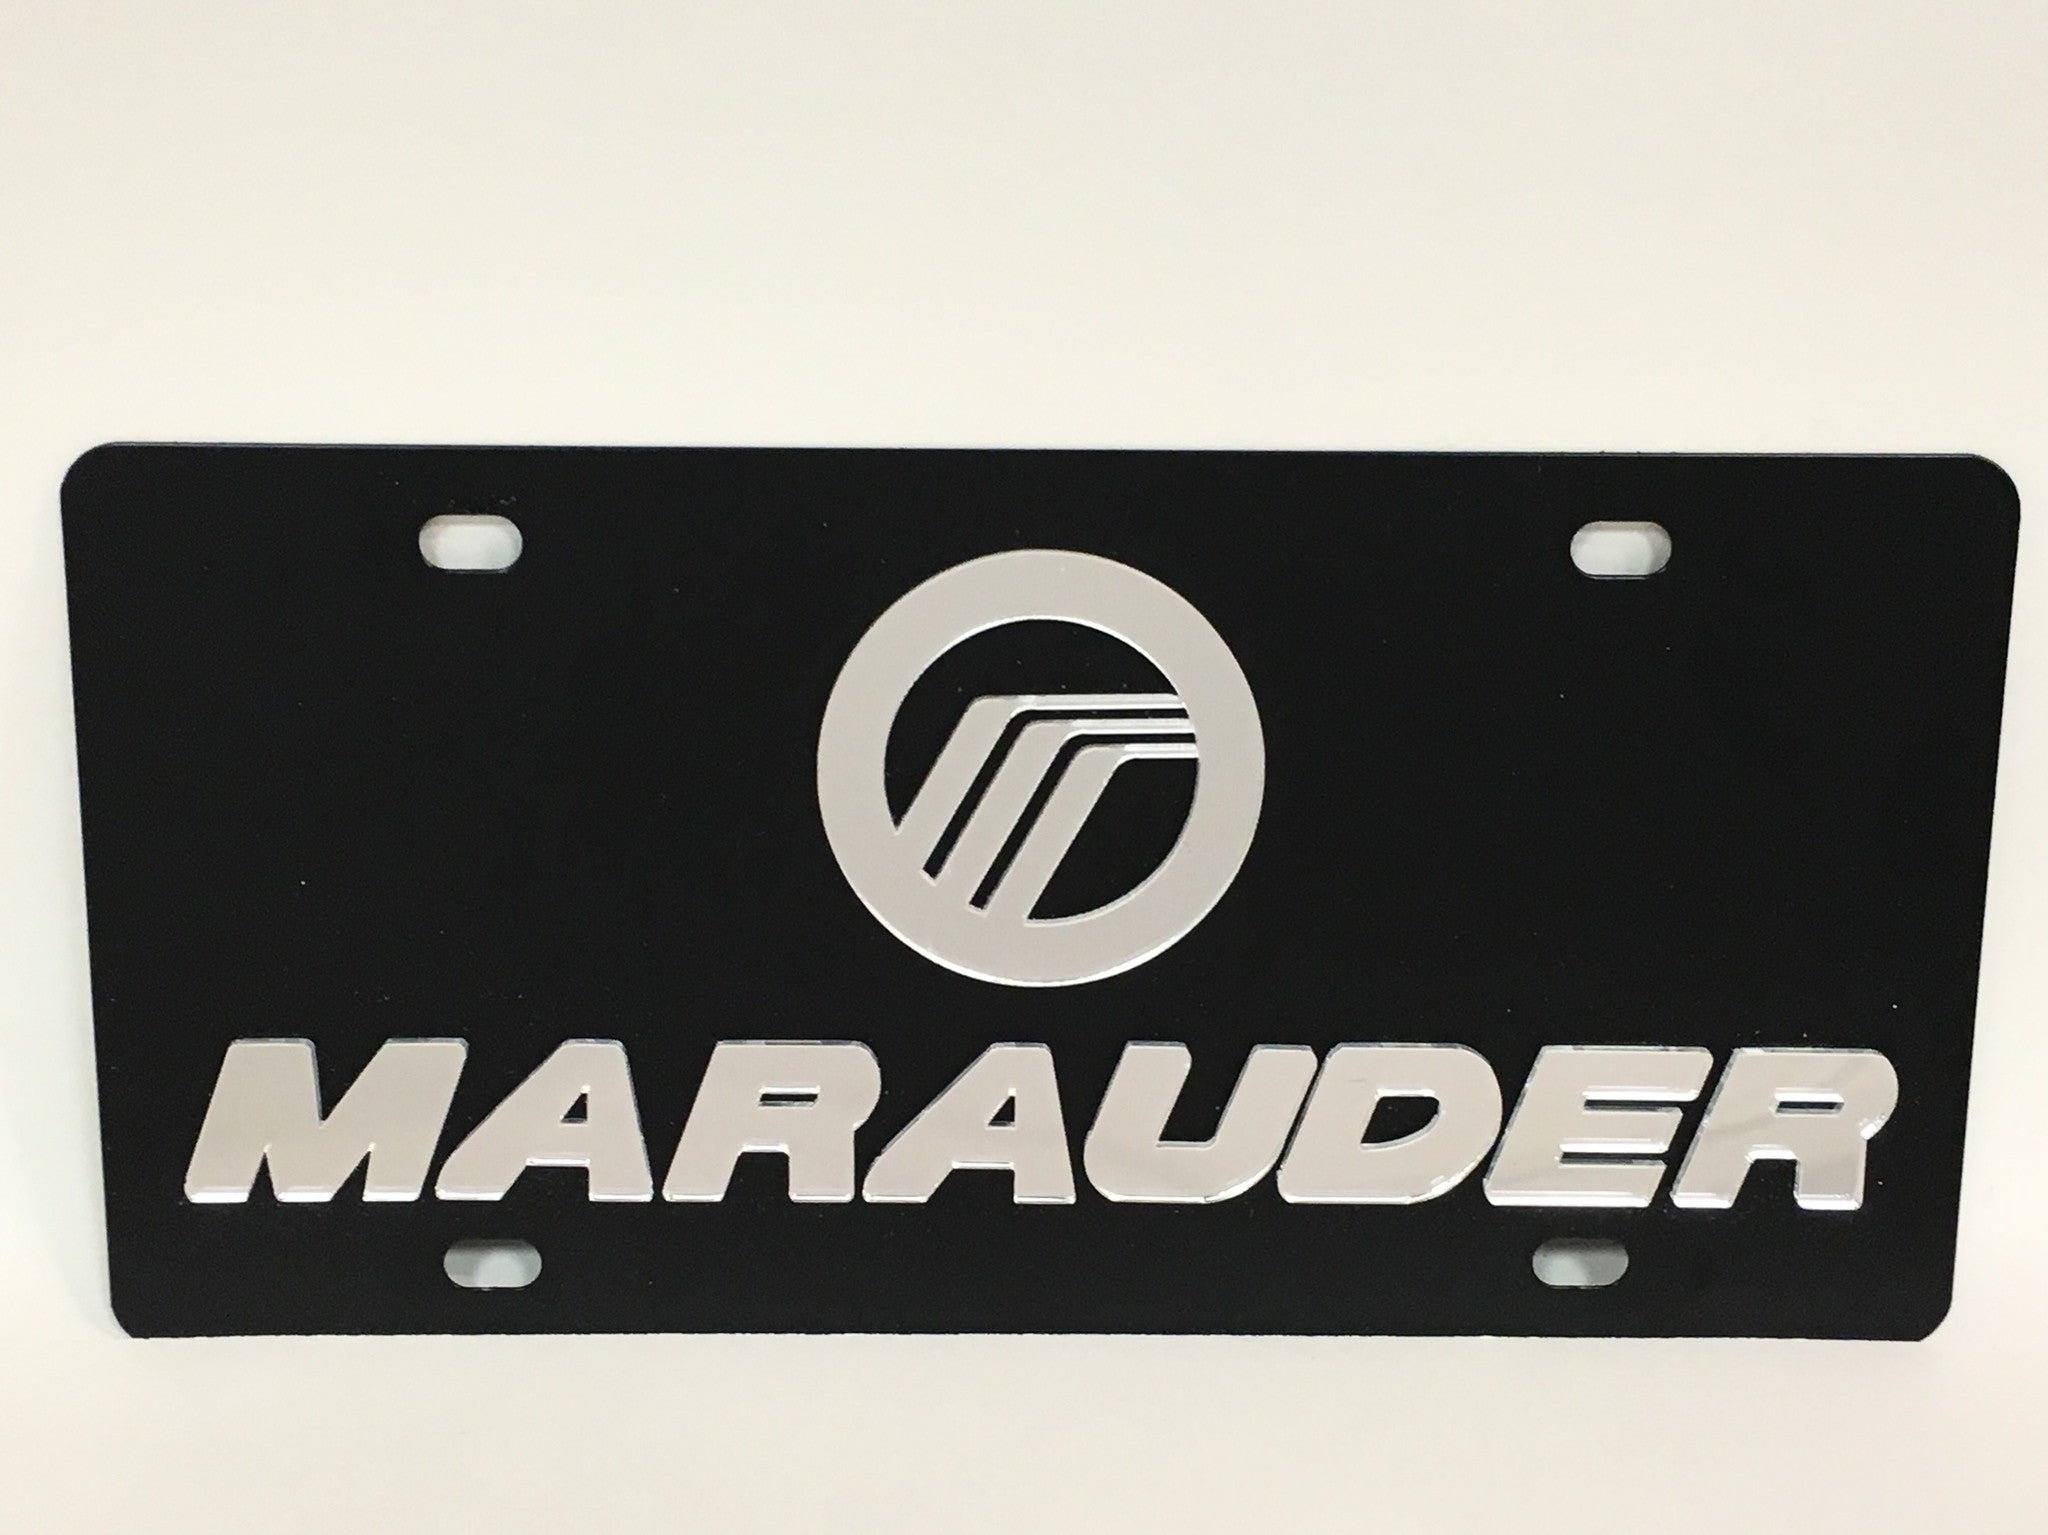 Mercury Marauder Black Stainless Steel License Plate